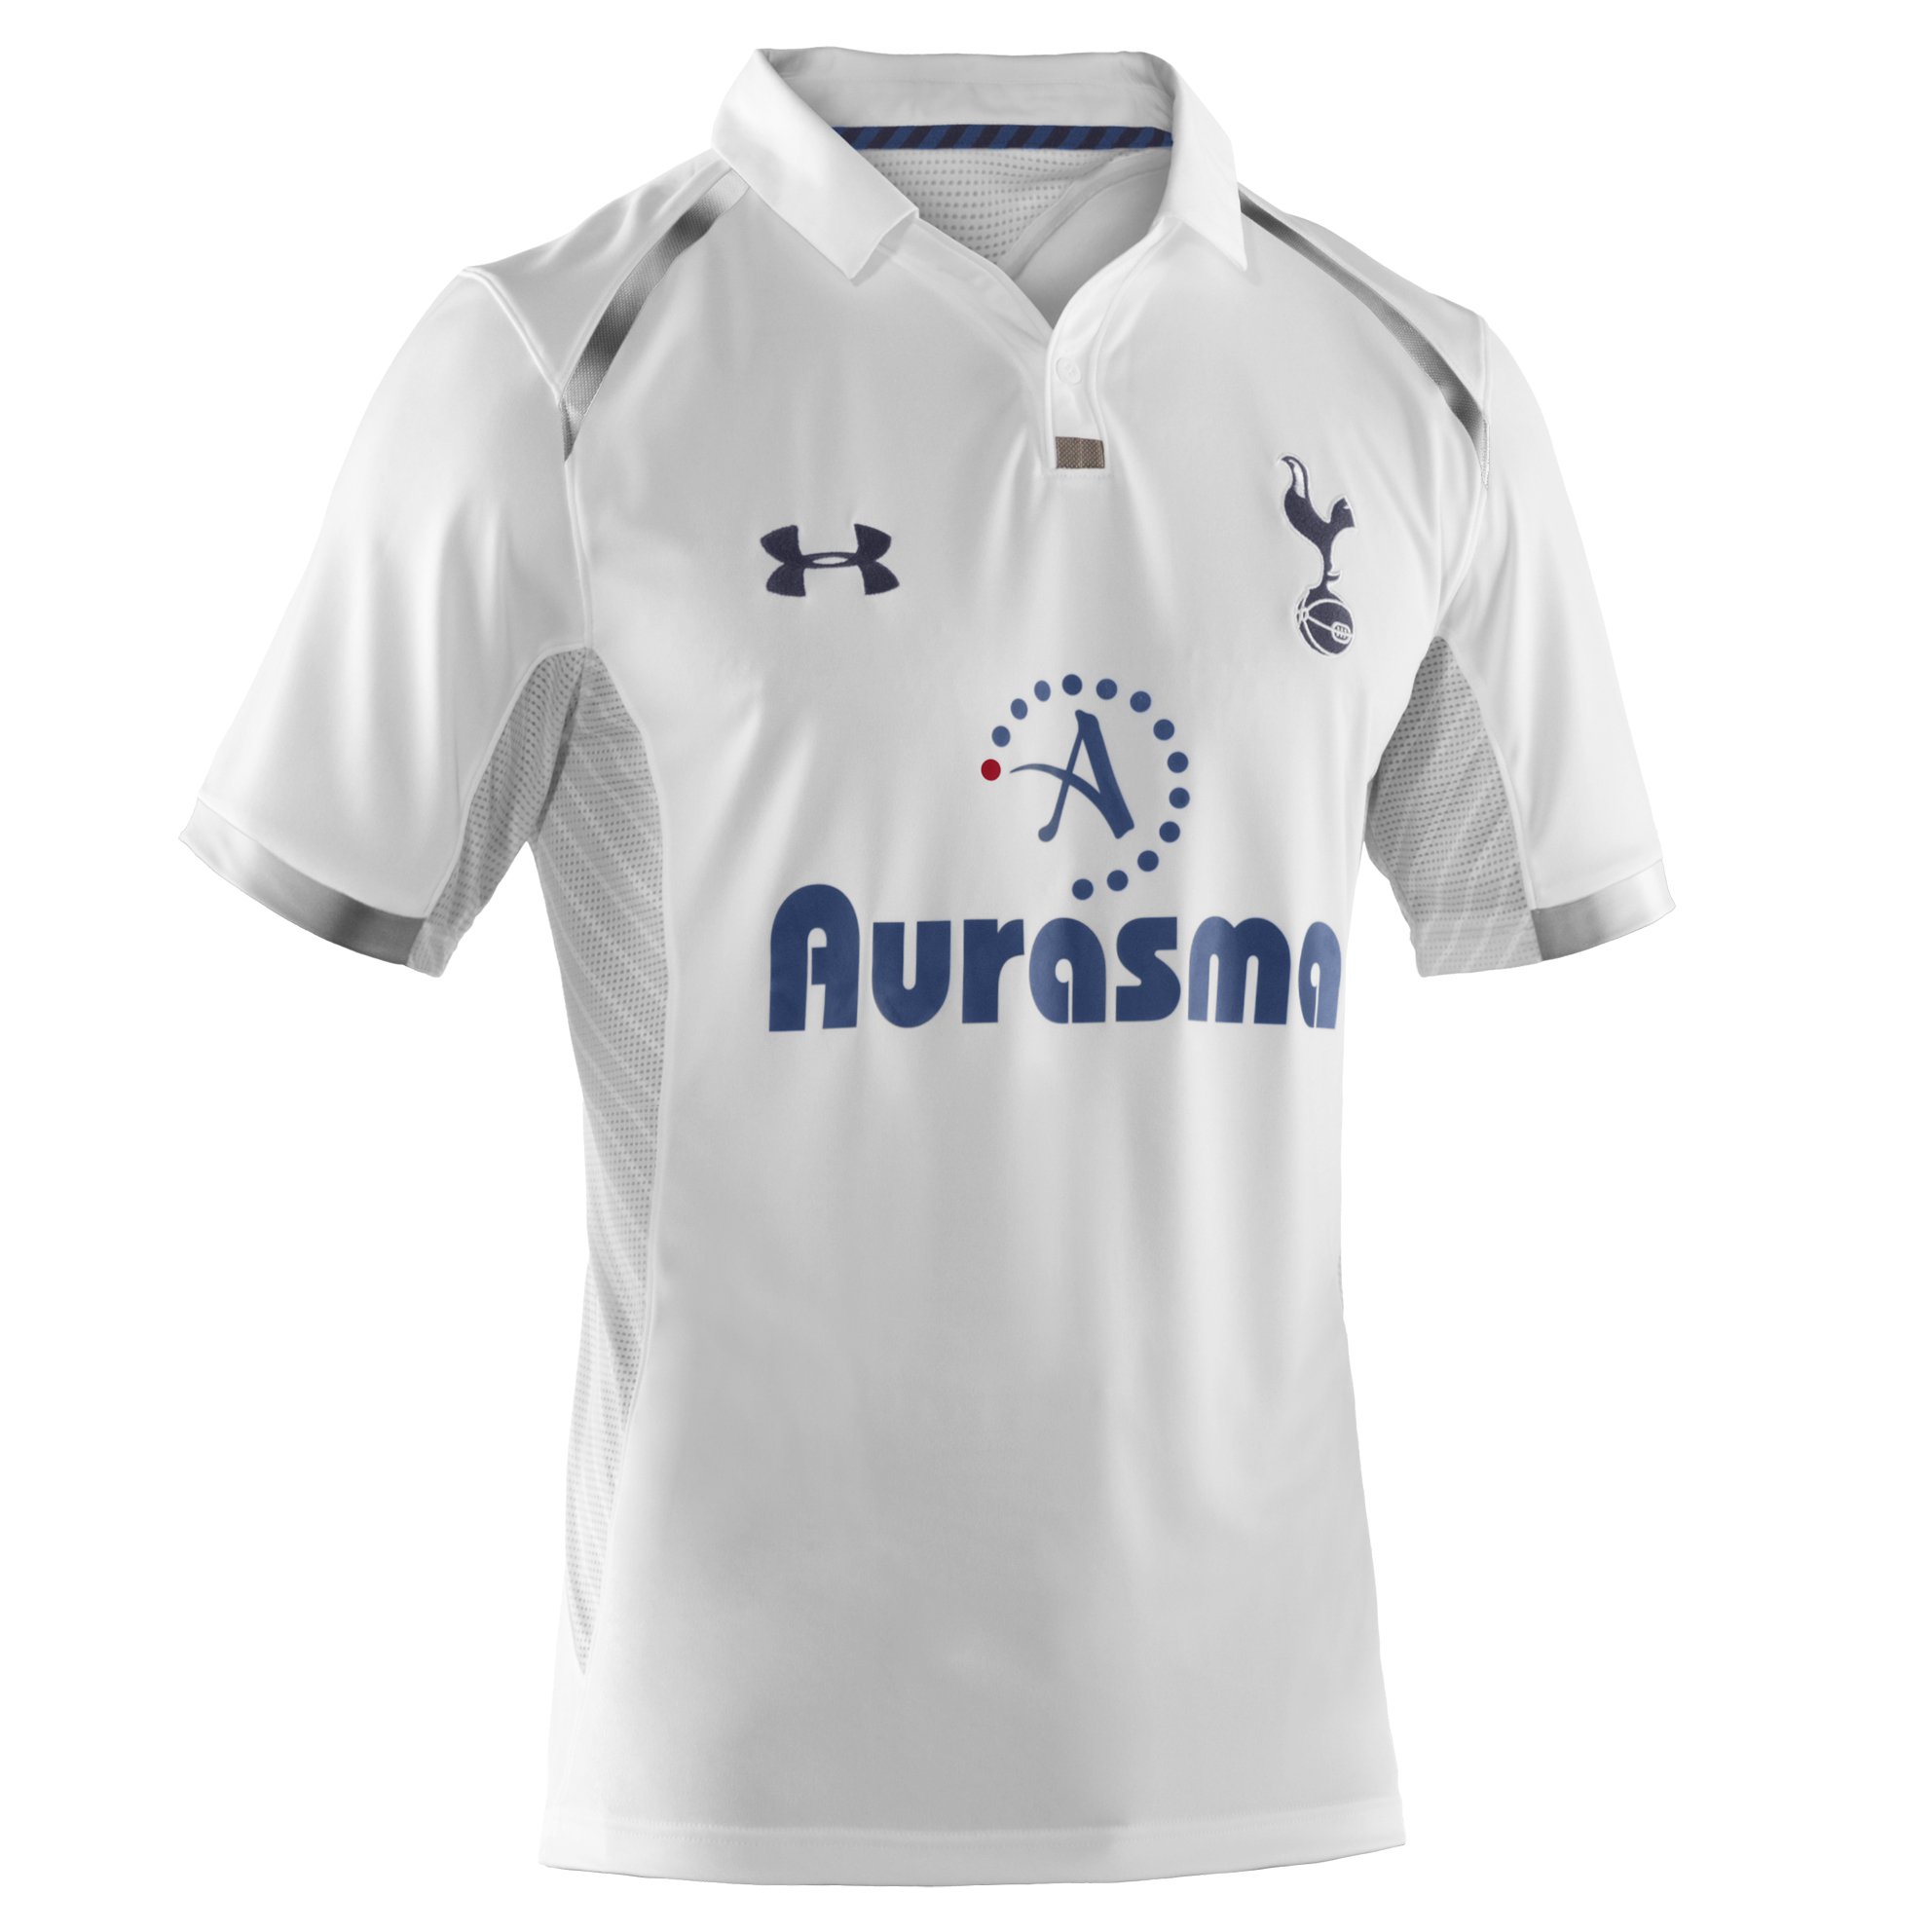 Tottenham Hotspur Home Shirt 2012/13 - Womens